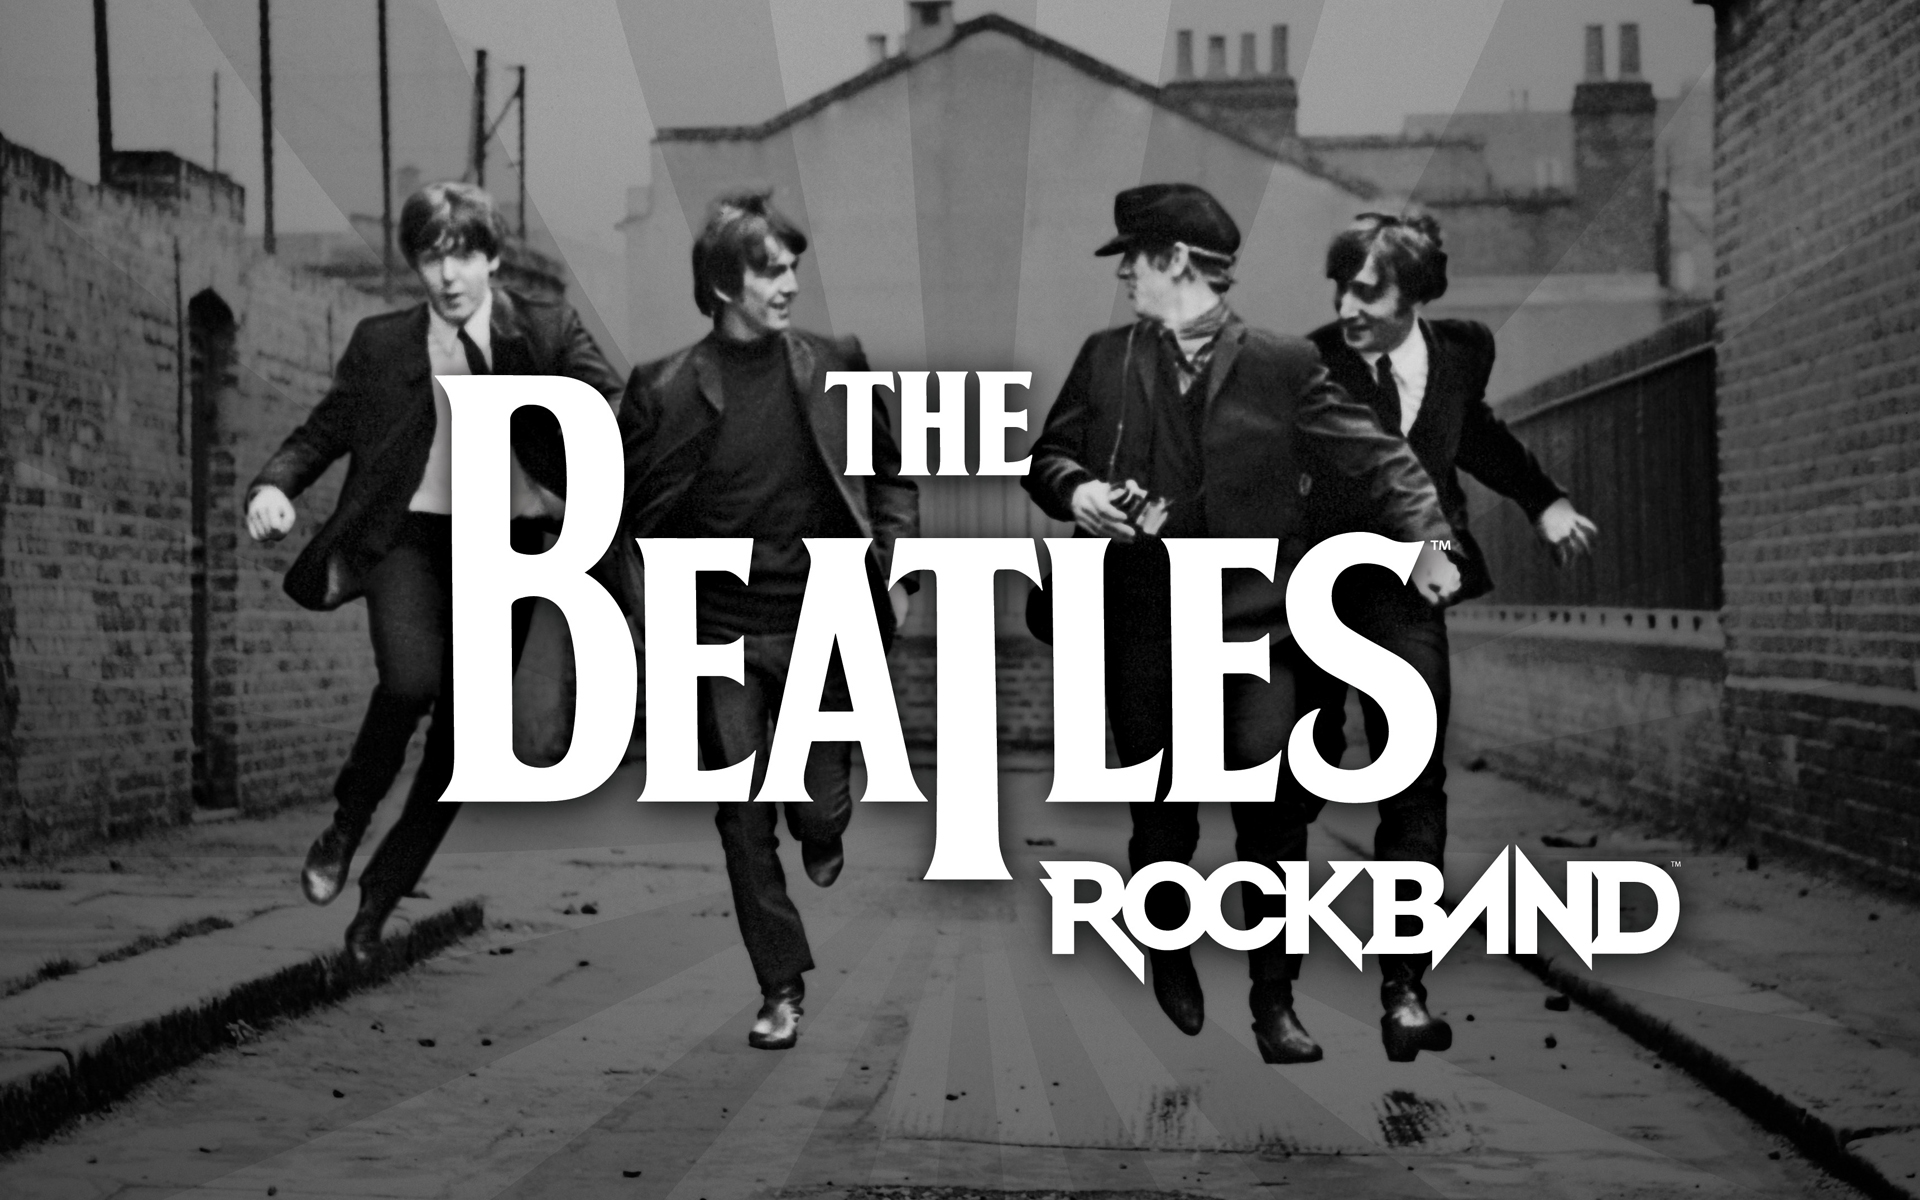 The Beatles Rock Band - 1920x1200